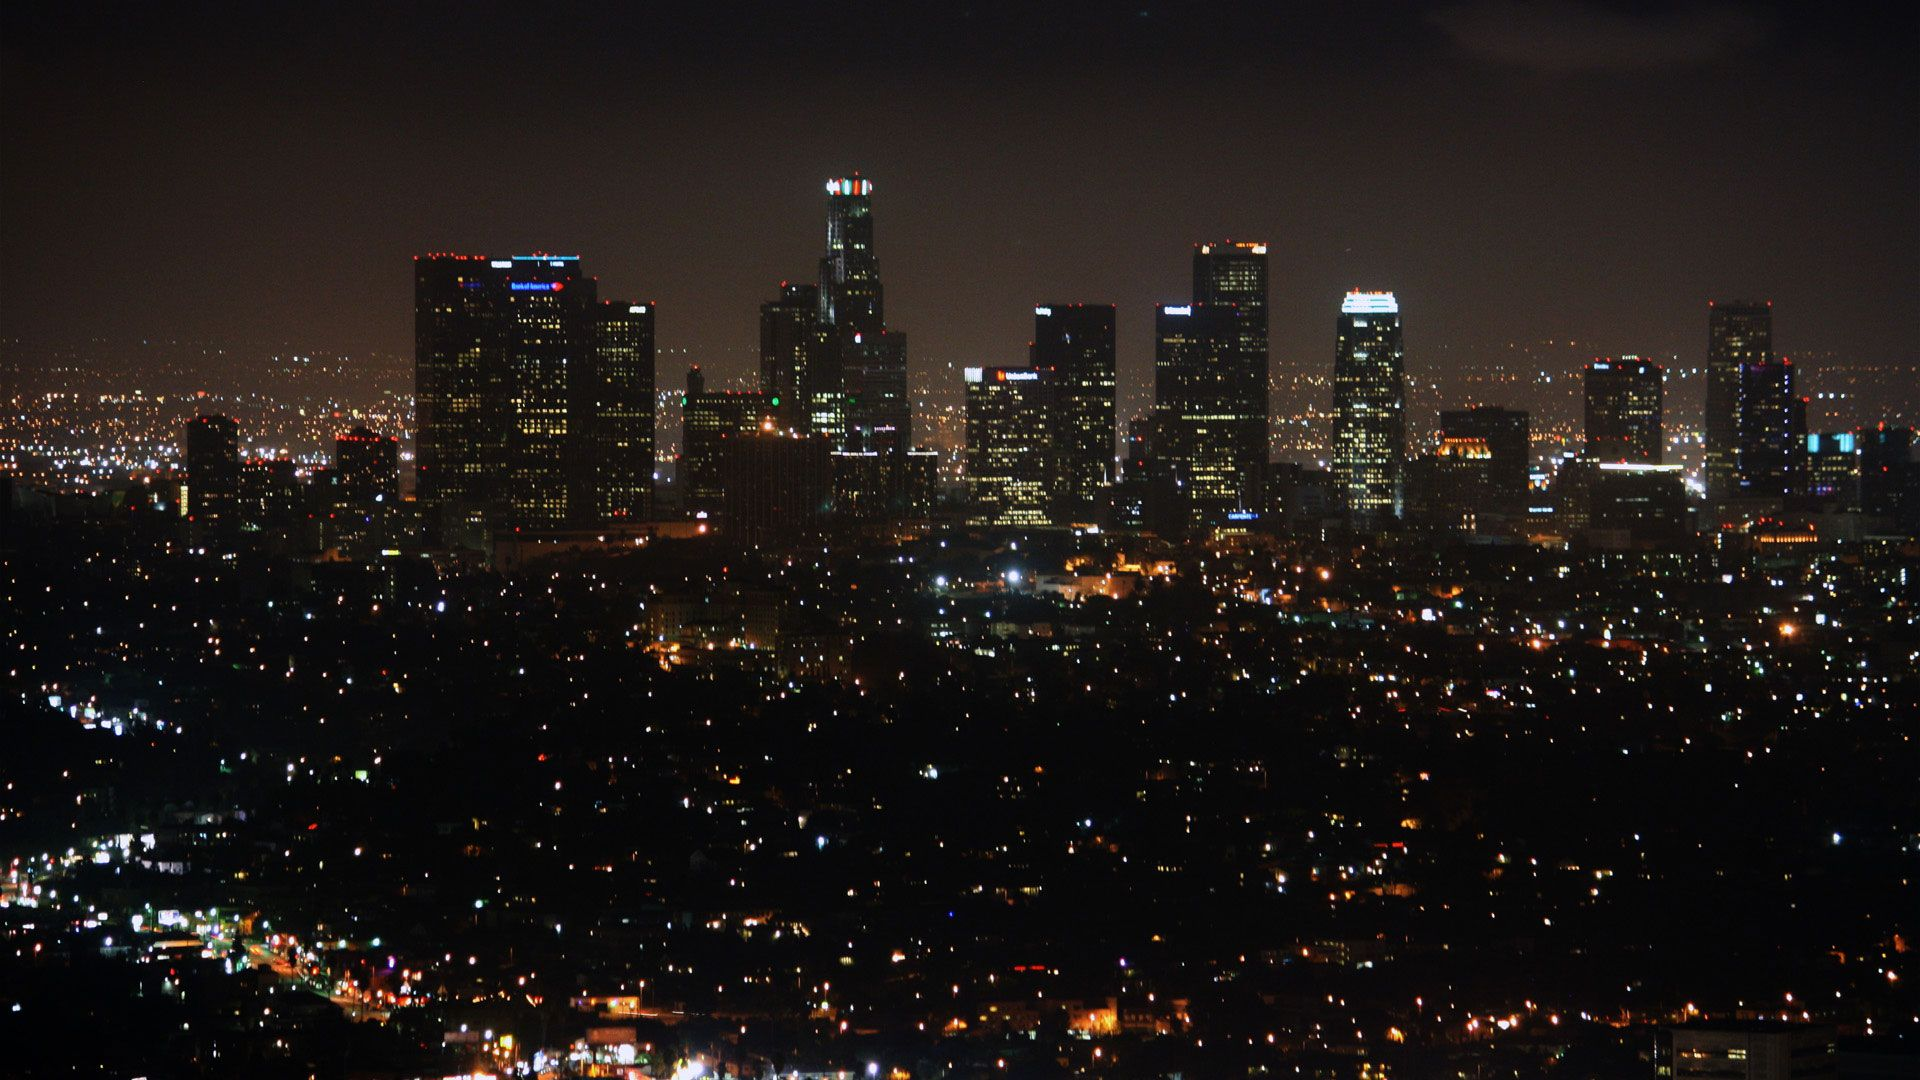 Hd Pics Photos Stunning Attractive Los Angeles 22 Hd Desktop Background Wallpaper Los Angeles Wallpaper Los Angeles Skyline Los Angeles City